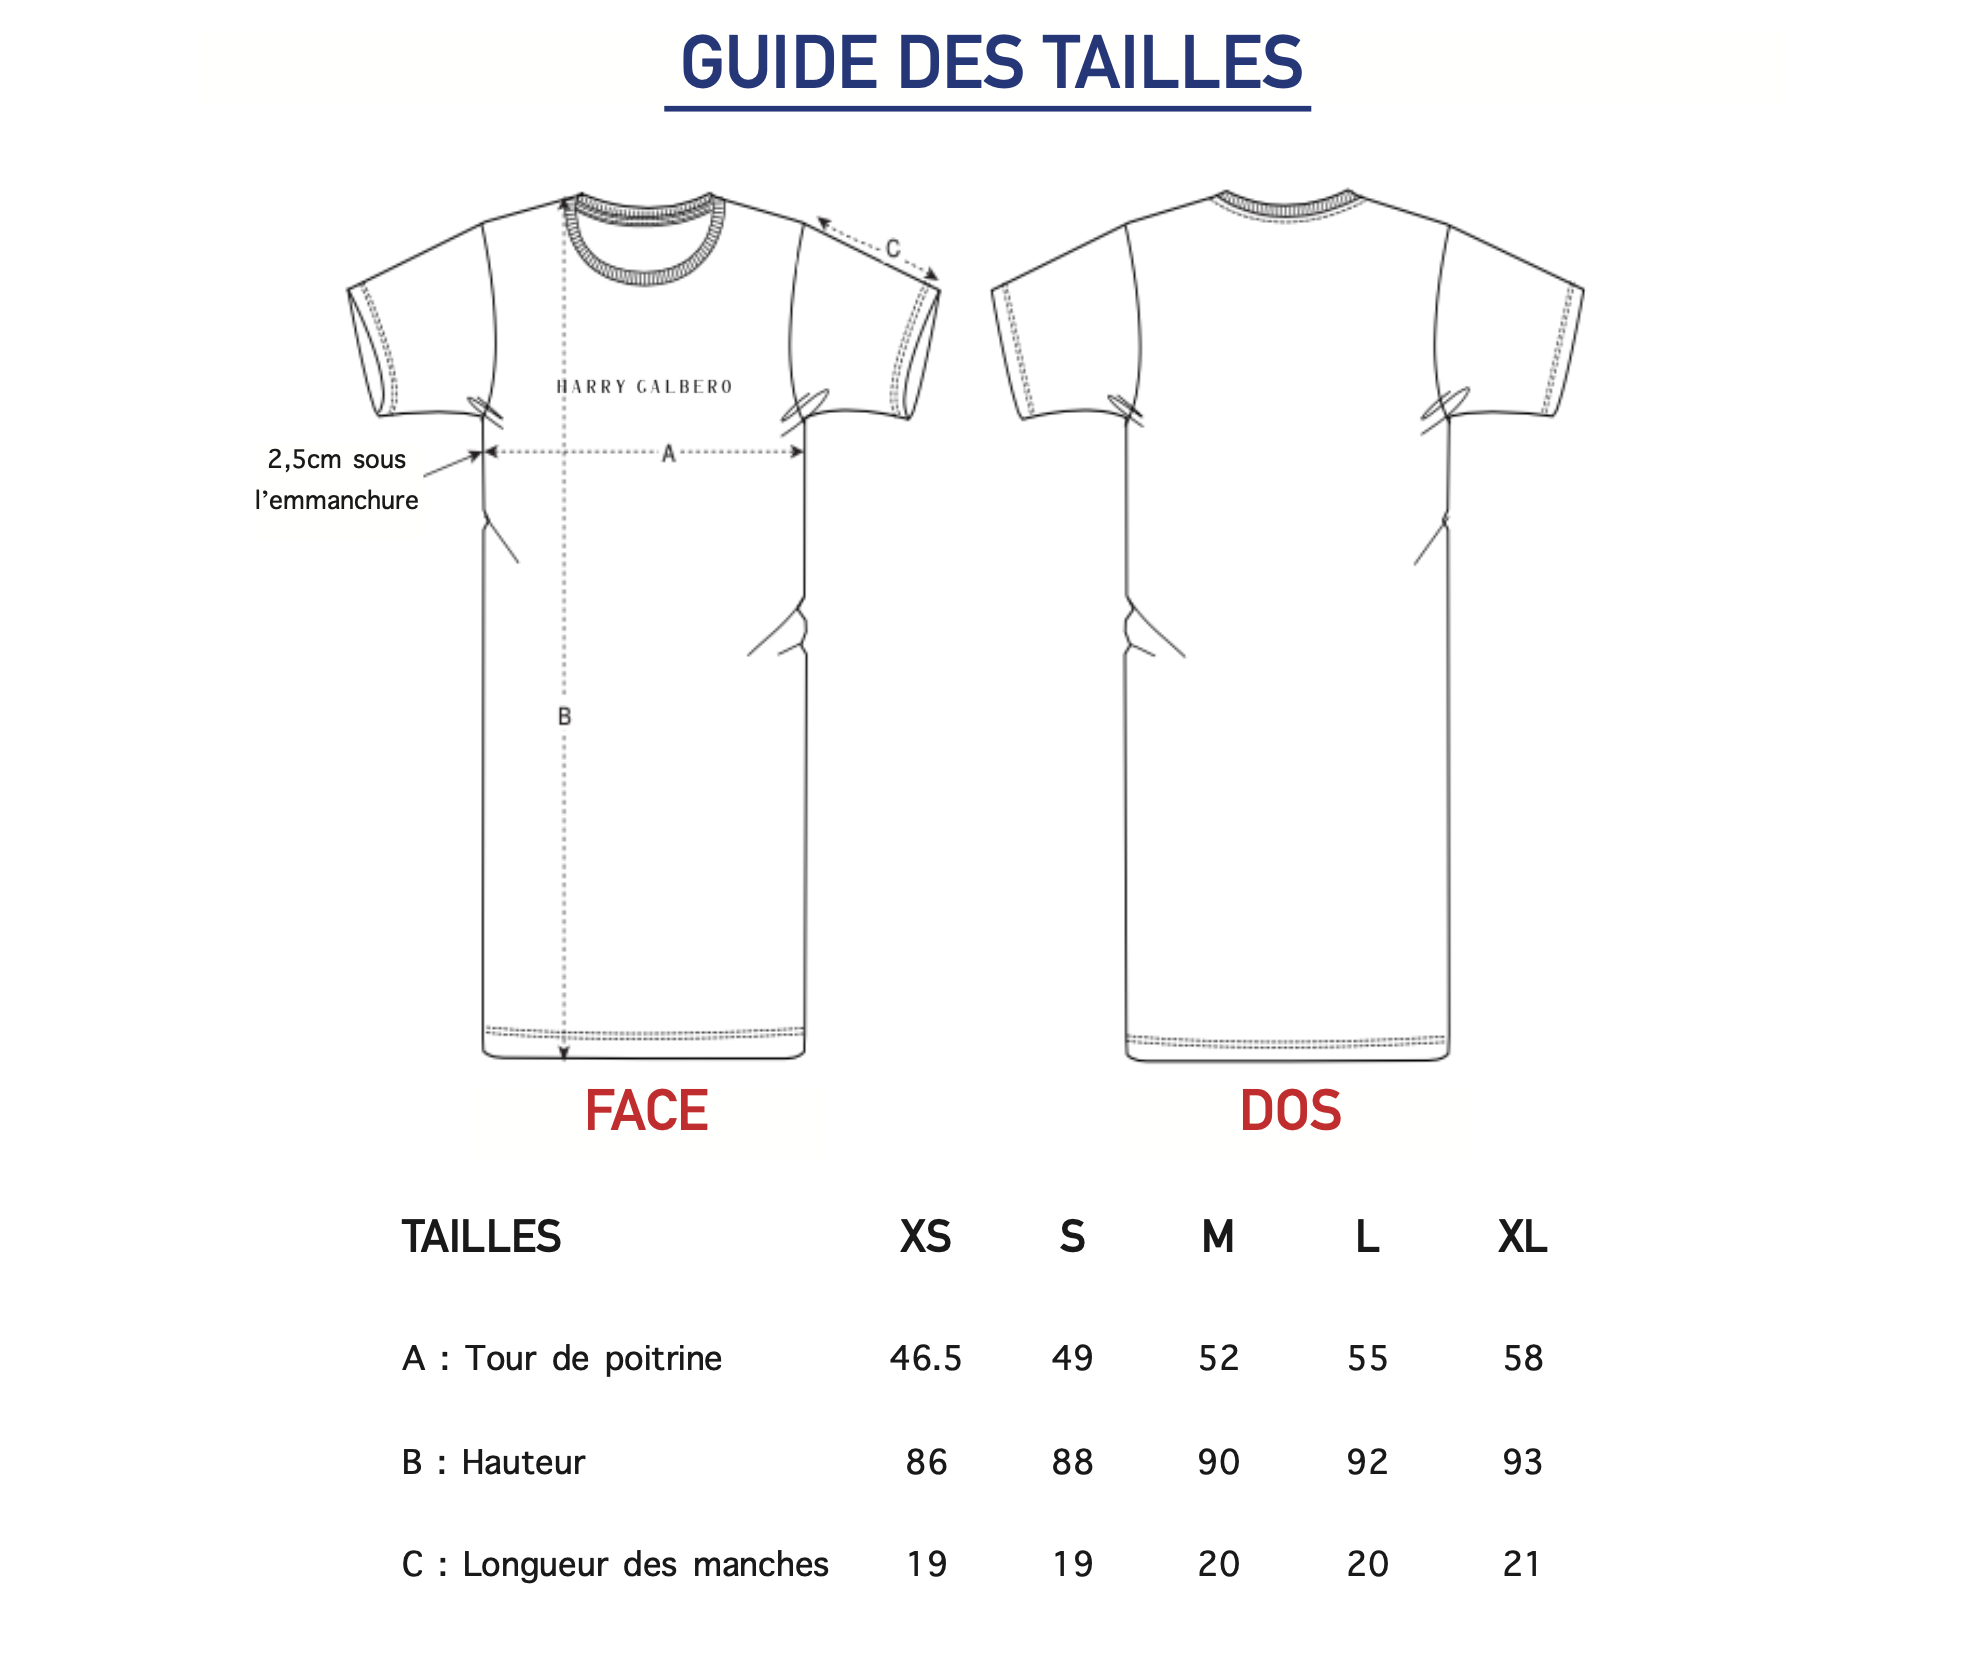 Guide des tailles Robe T-shit femme harry Galbero